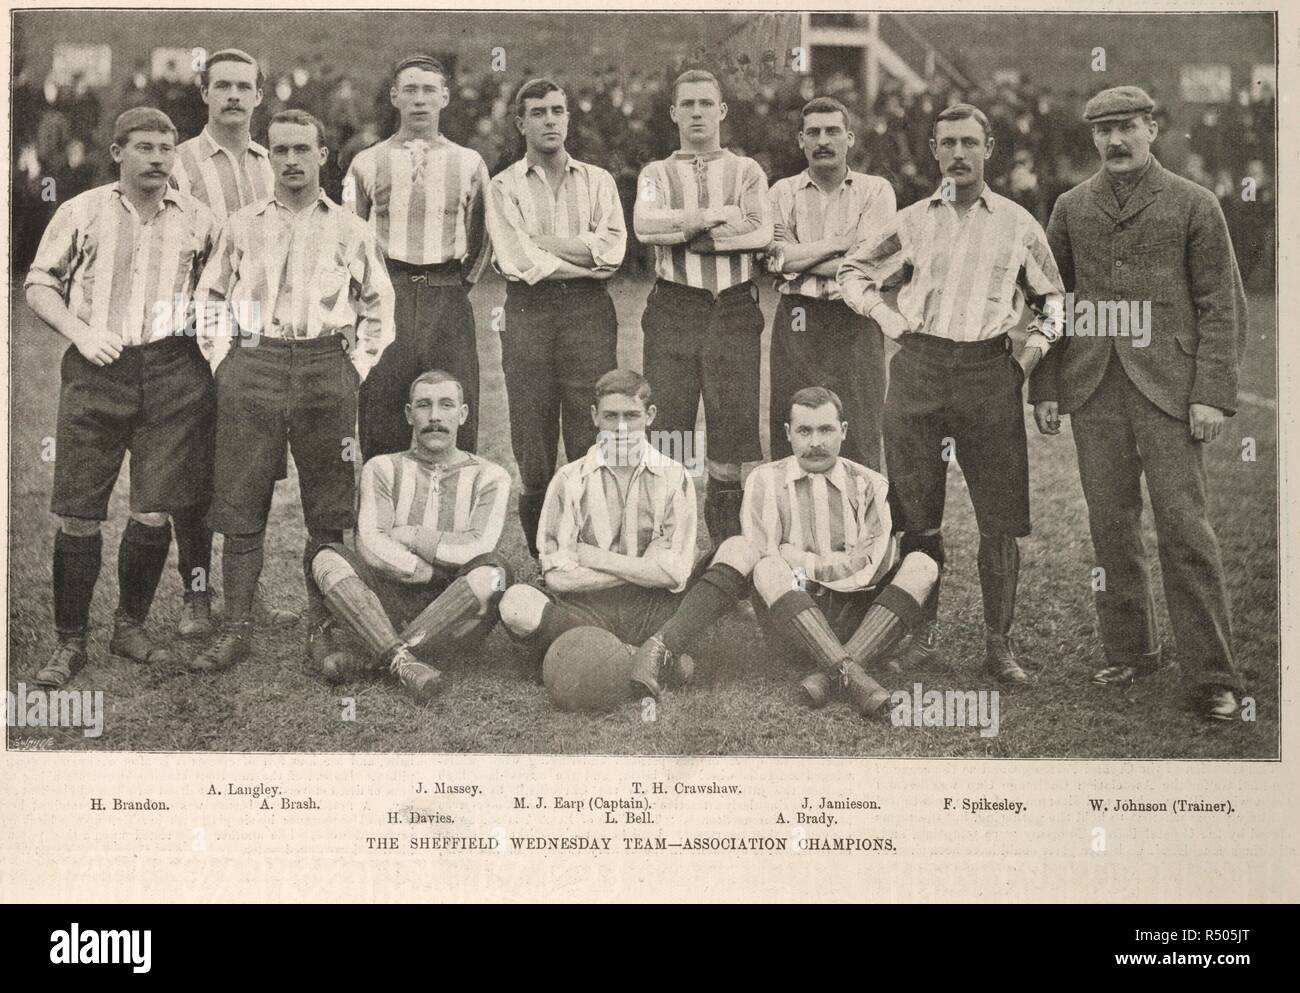 The Sheffield Wednesday team - Association champions. Team photograph. Illustrated sporting and dramatic news. 14 April 1896. Sheffield Wednesday won the FA Cup in 1896, beating Wolverhampton Wanderers 2–1 at Crystal Palace. Source: Illustrated sporting and dramatic news. page 273. Stock Photo